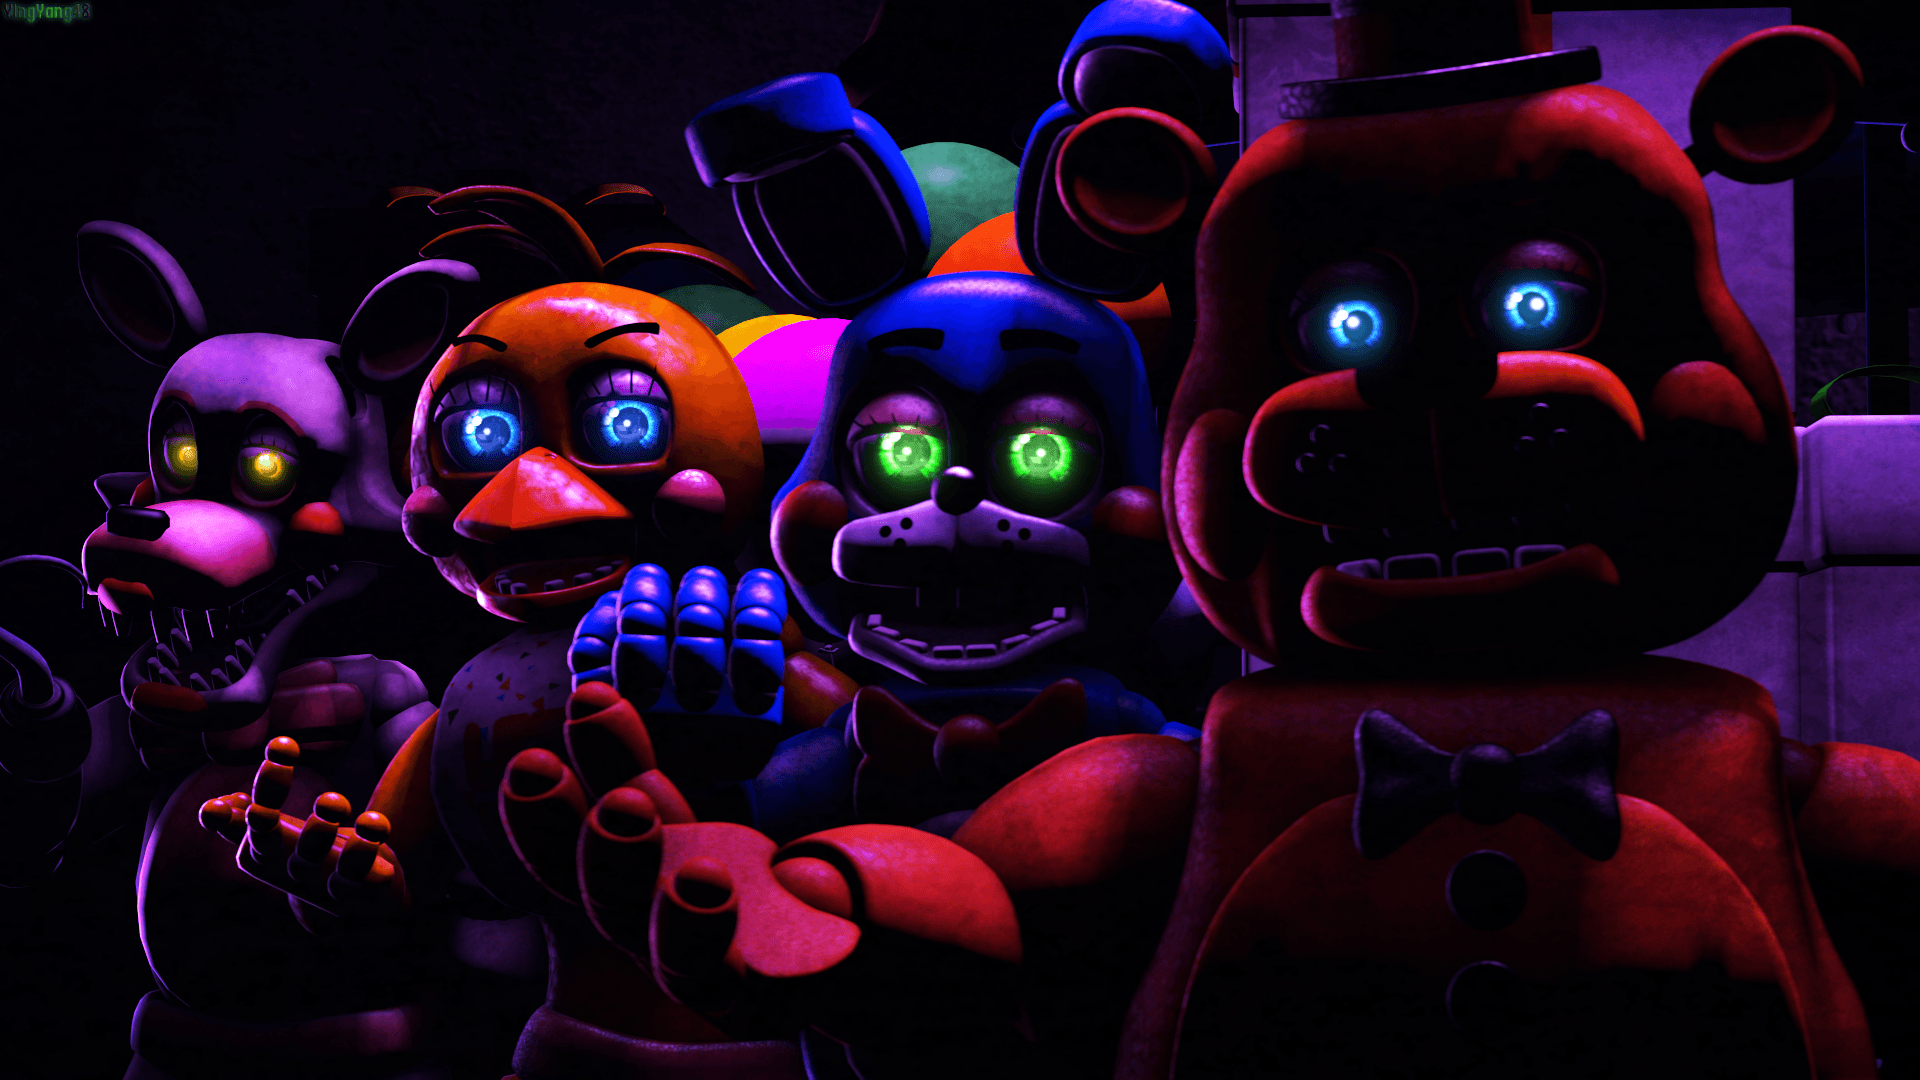 Five Nights At Freddy's 2 Wallpapers   Wallpaper Cave